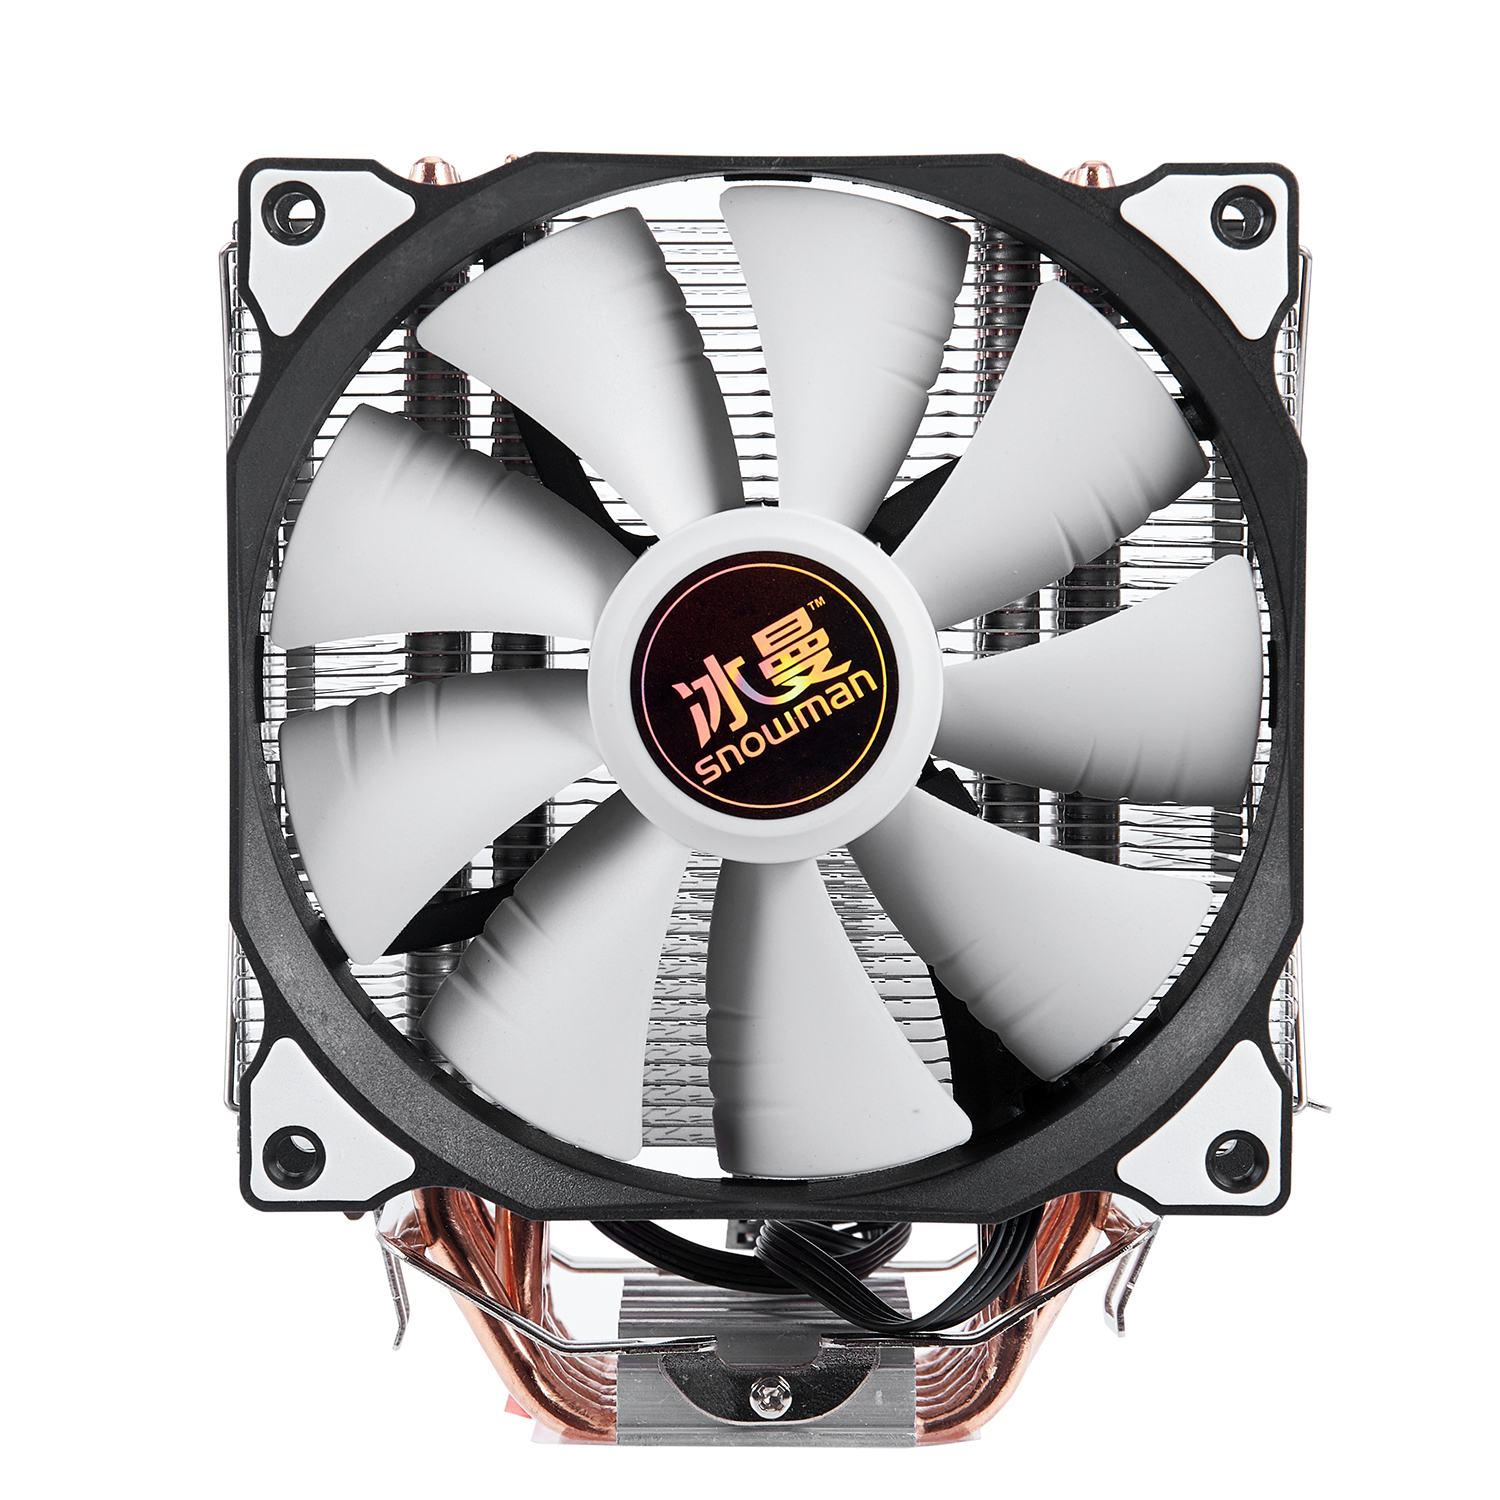 SNOWMAN 4 PIN CPU Cooler 6 Heatpipe Single/Double Fan Cooling 12 Cm Fan LGA775 1151 115x 1366 Support Intel AMD